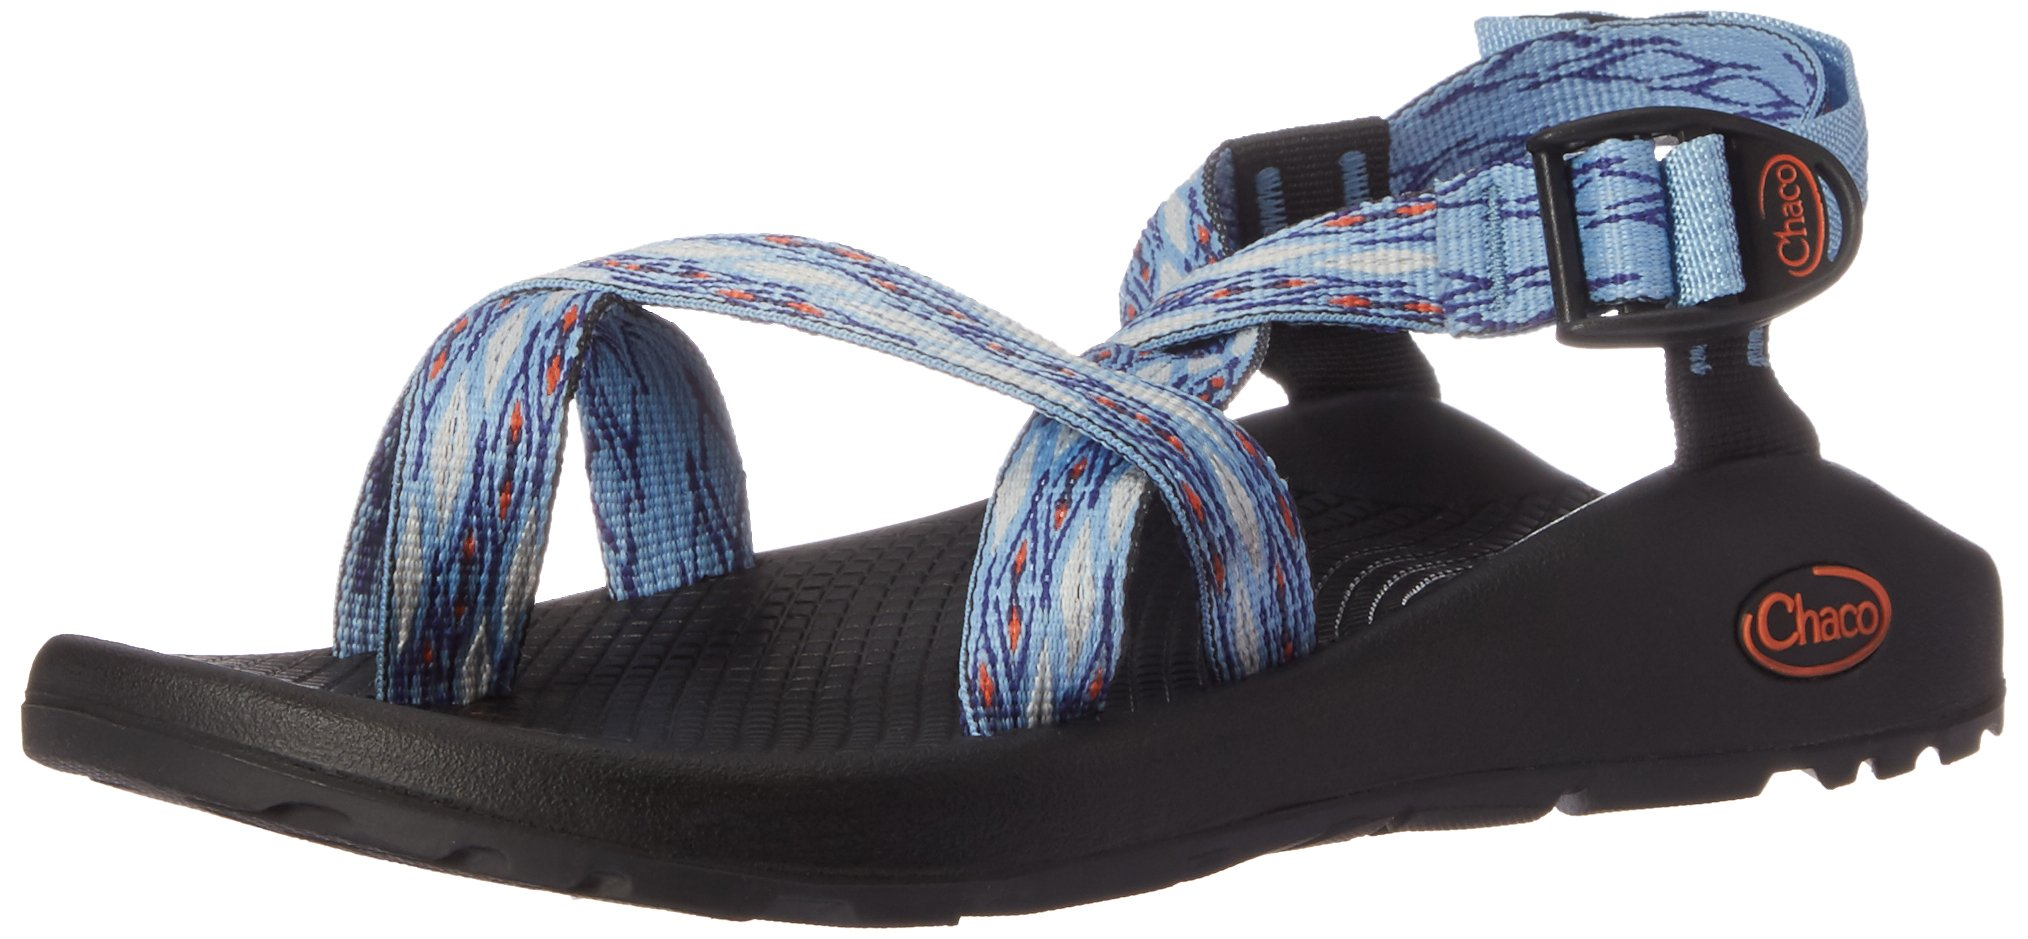 Chaco Women's Z2 Classic Athletic Sandal, Bluebell, 8 M US